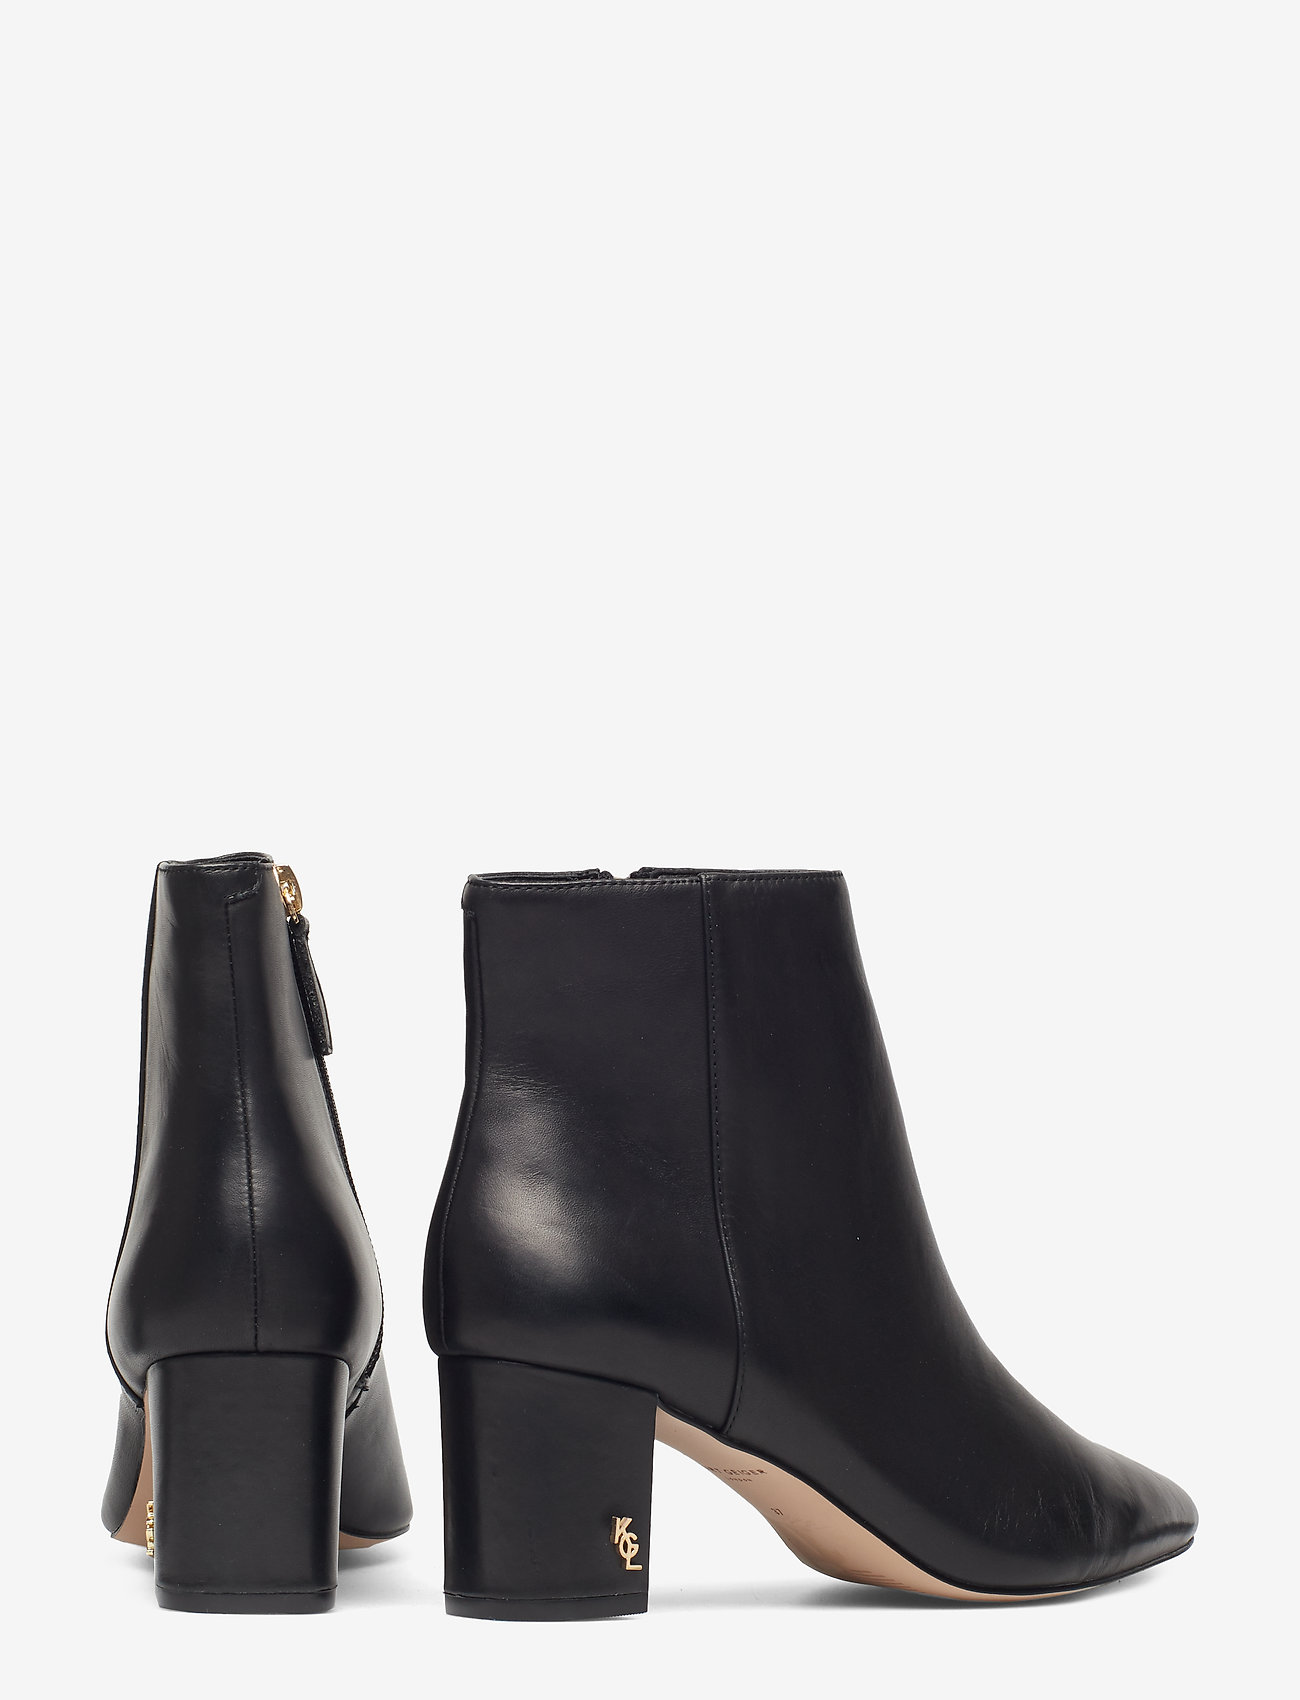 Burlington Ankl (Black) - Kurt Geiger London